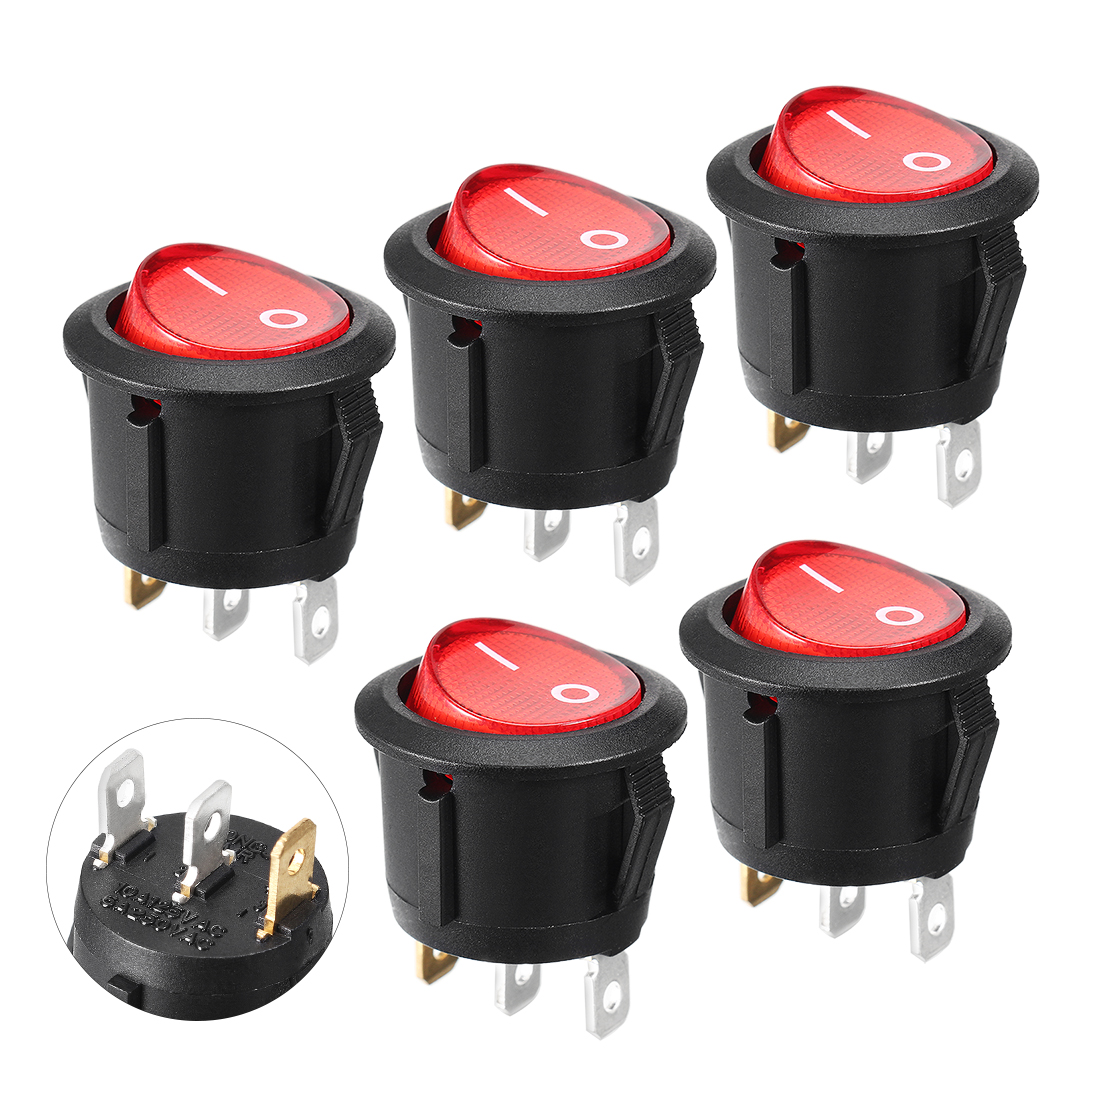 5 Pcs 3 Pin 2 Position ON/OFF SPST Red Light Snap in Panel Mount Rocker Switch AC 6A/250V 10A/125V